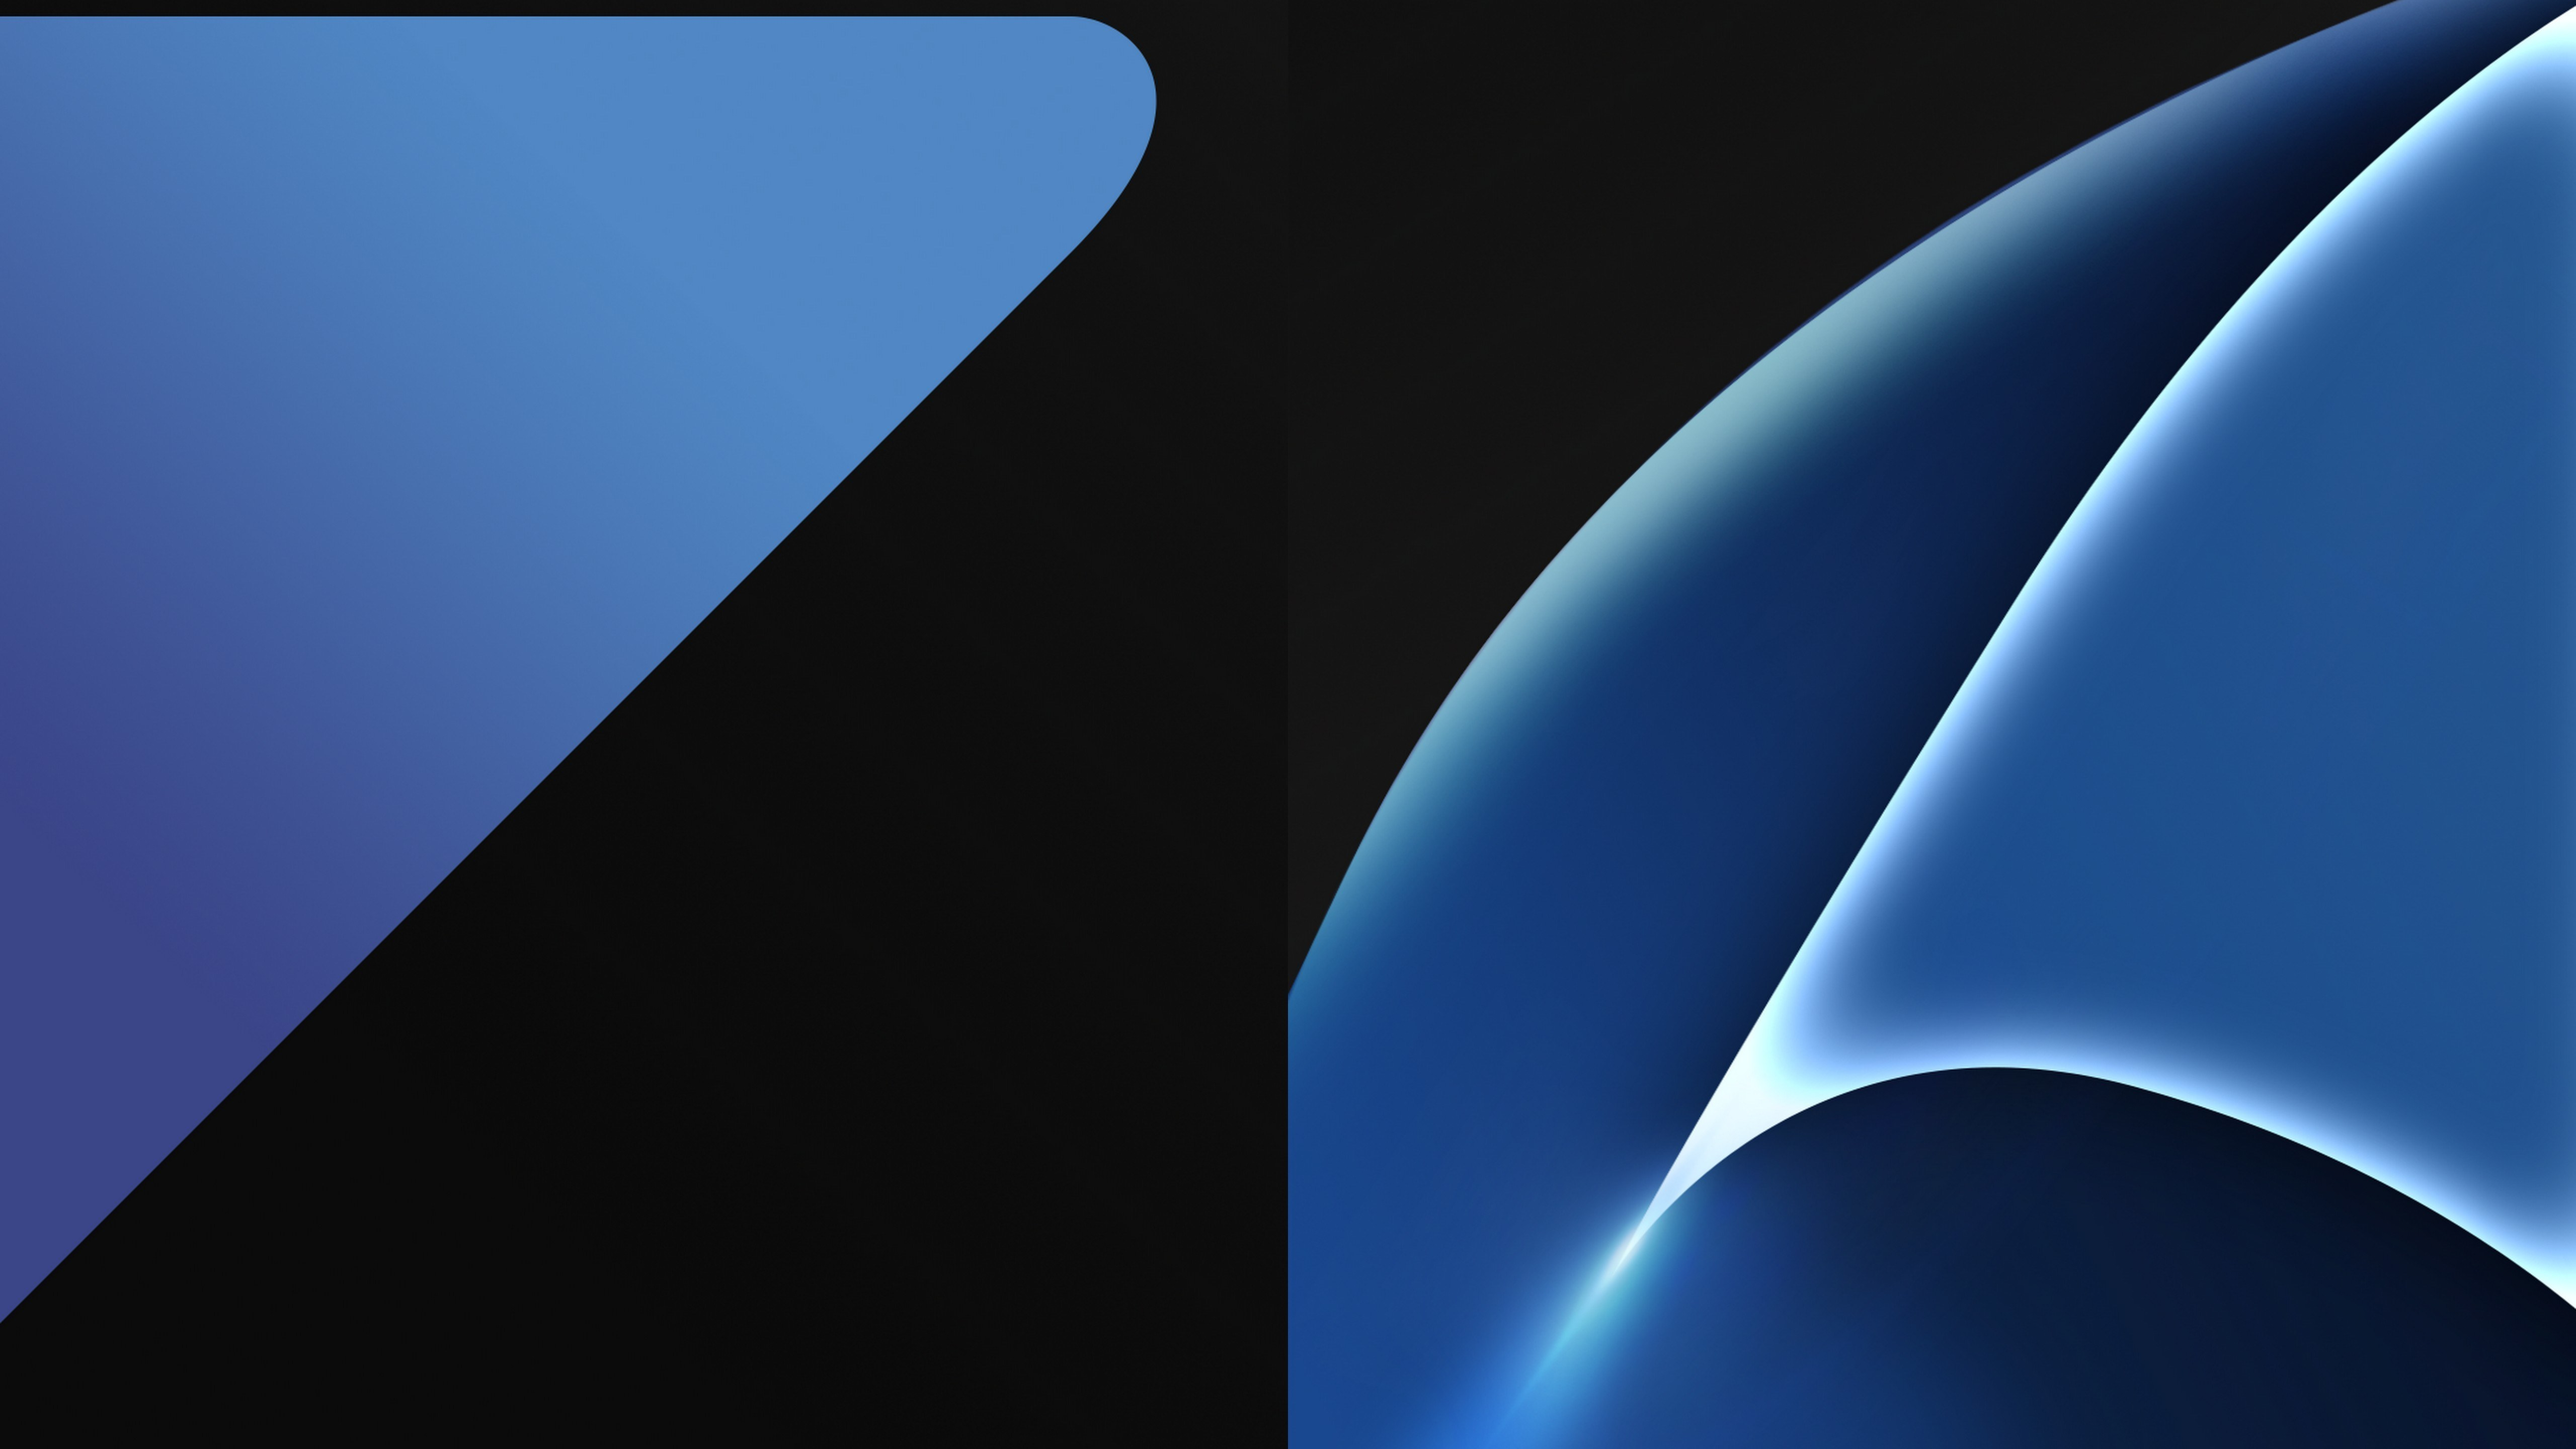 Samsung Galaxy S7 Stock Wallpapers Download Full HD 5120x2880